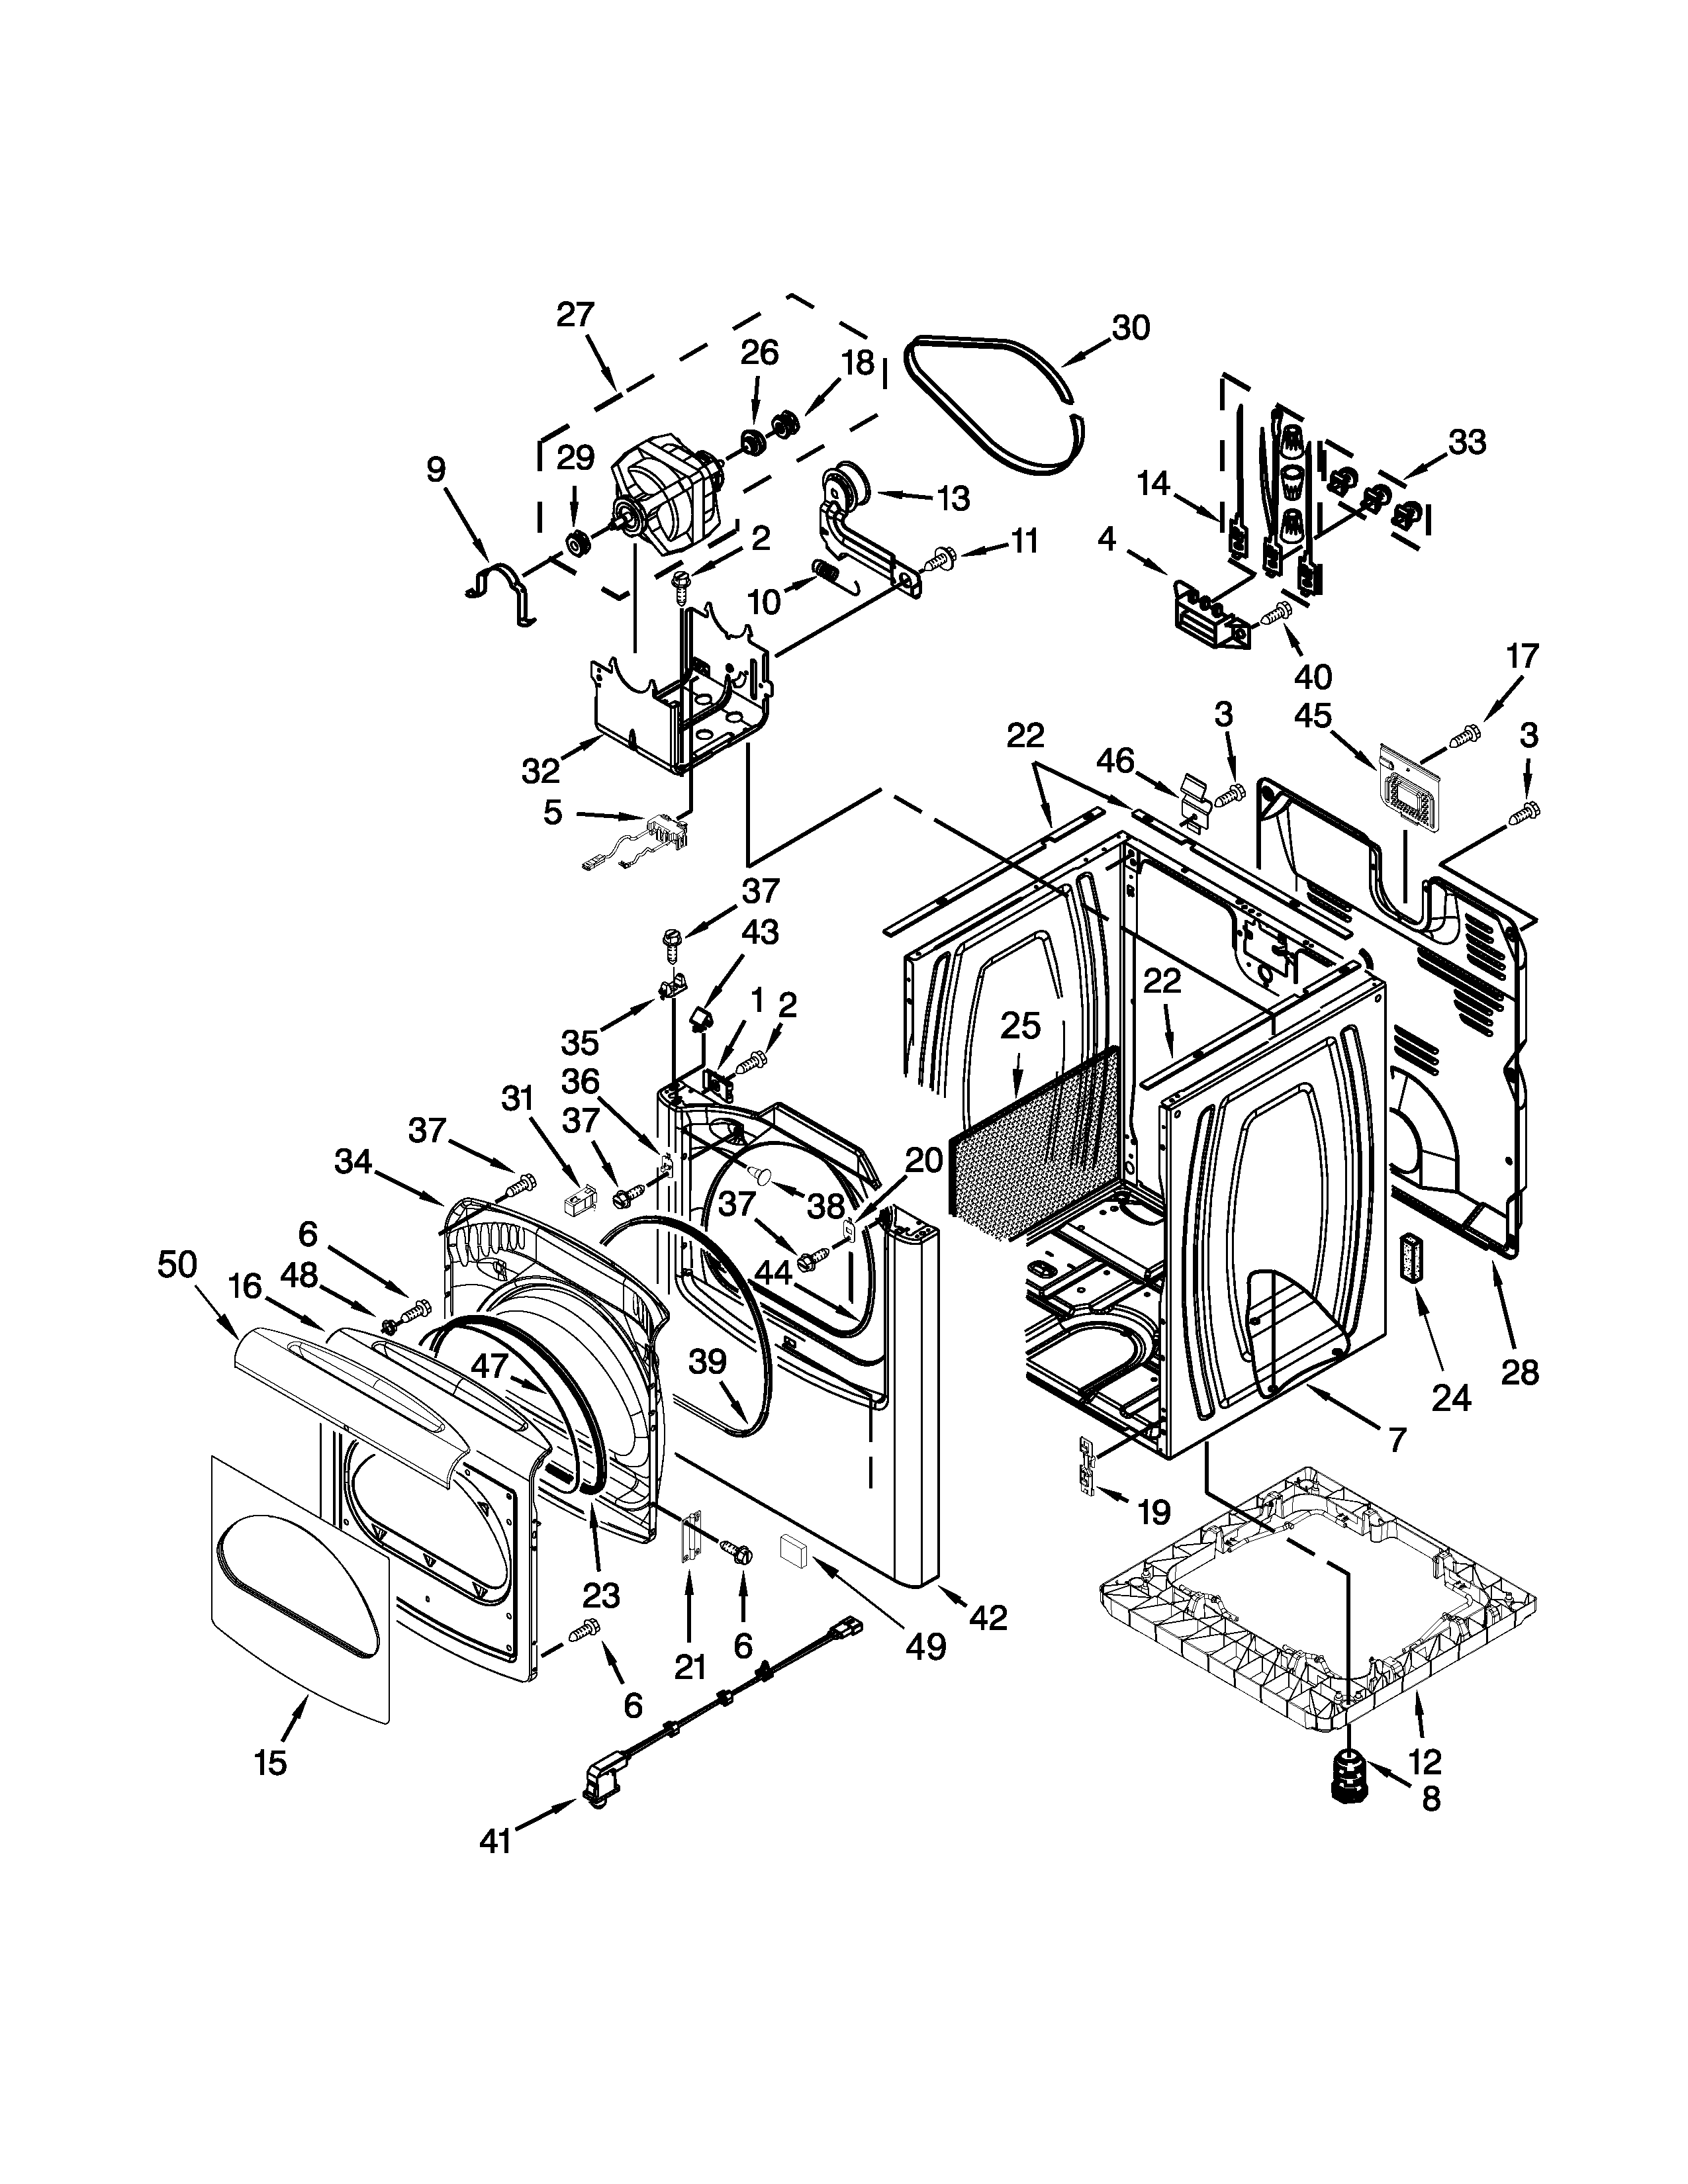 Exelent raven cable wiring diagrams illustration electrical